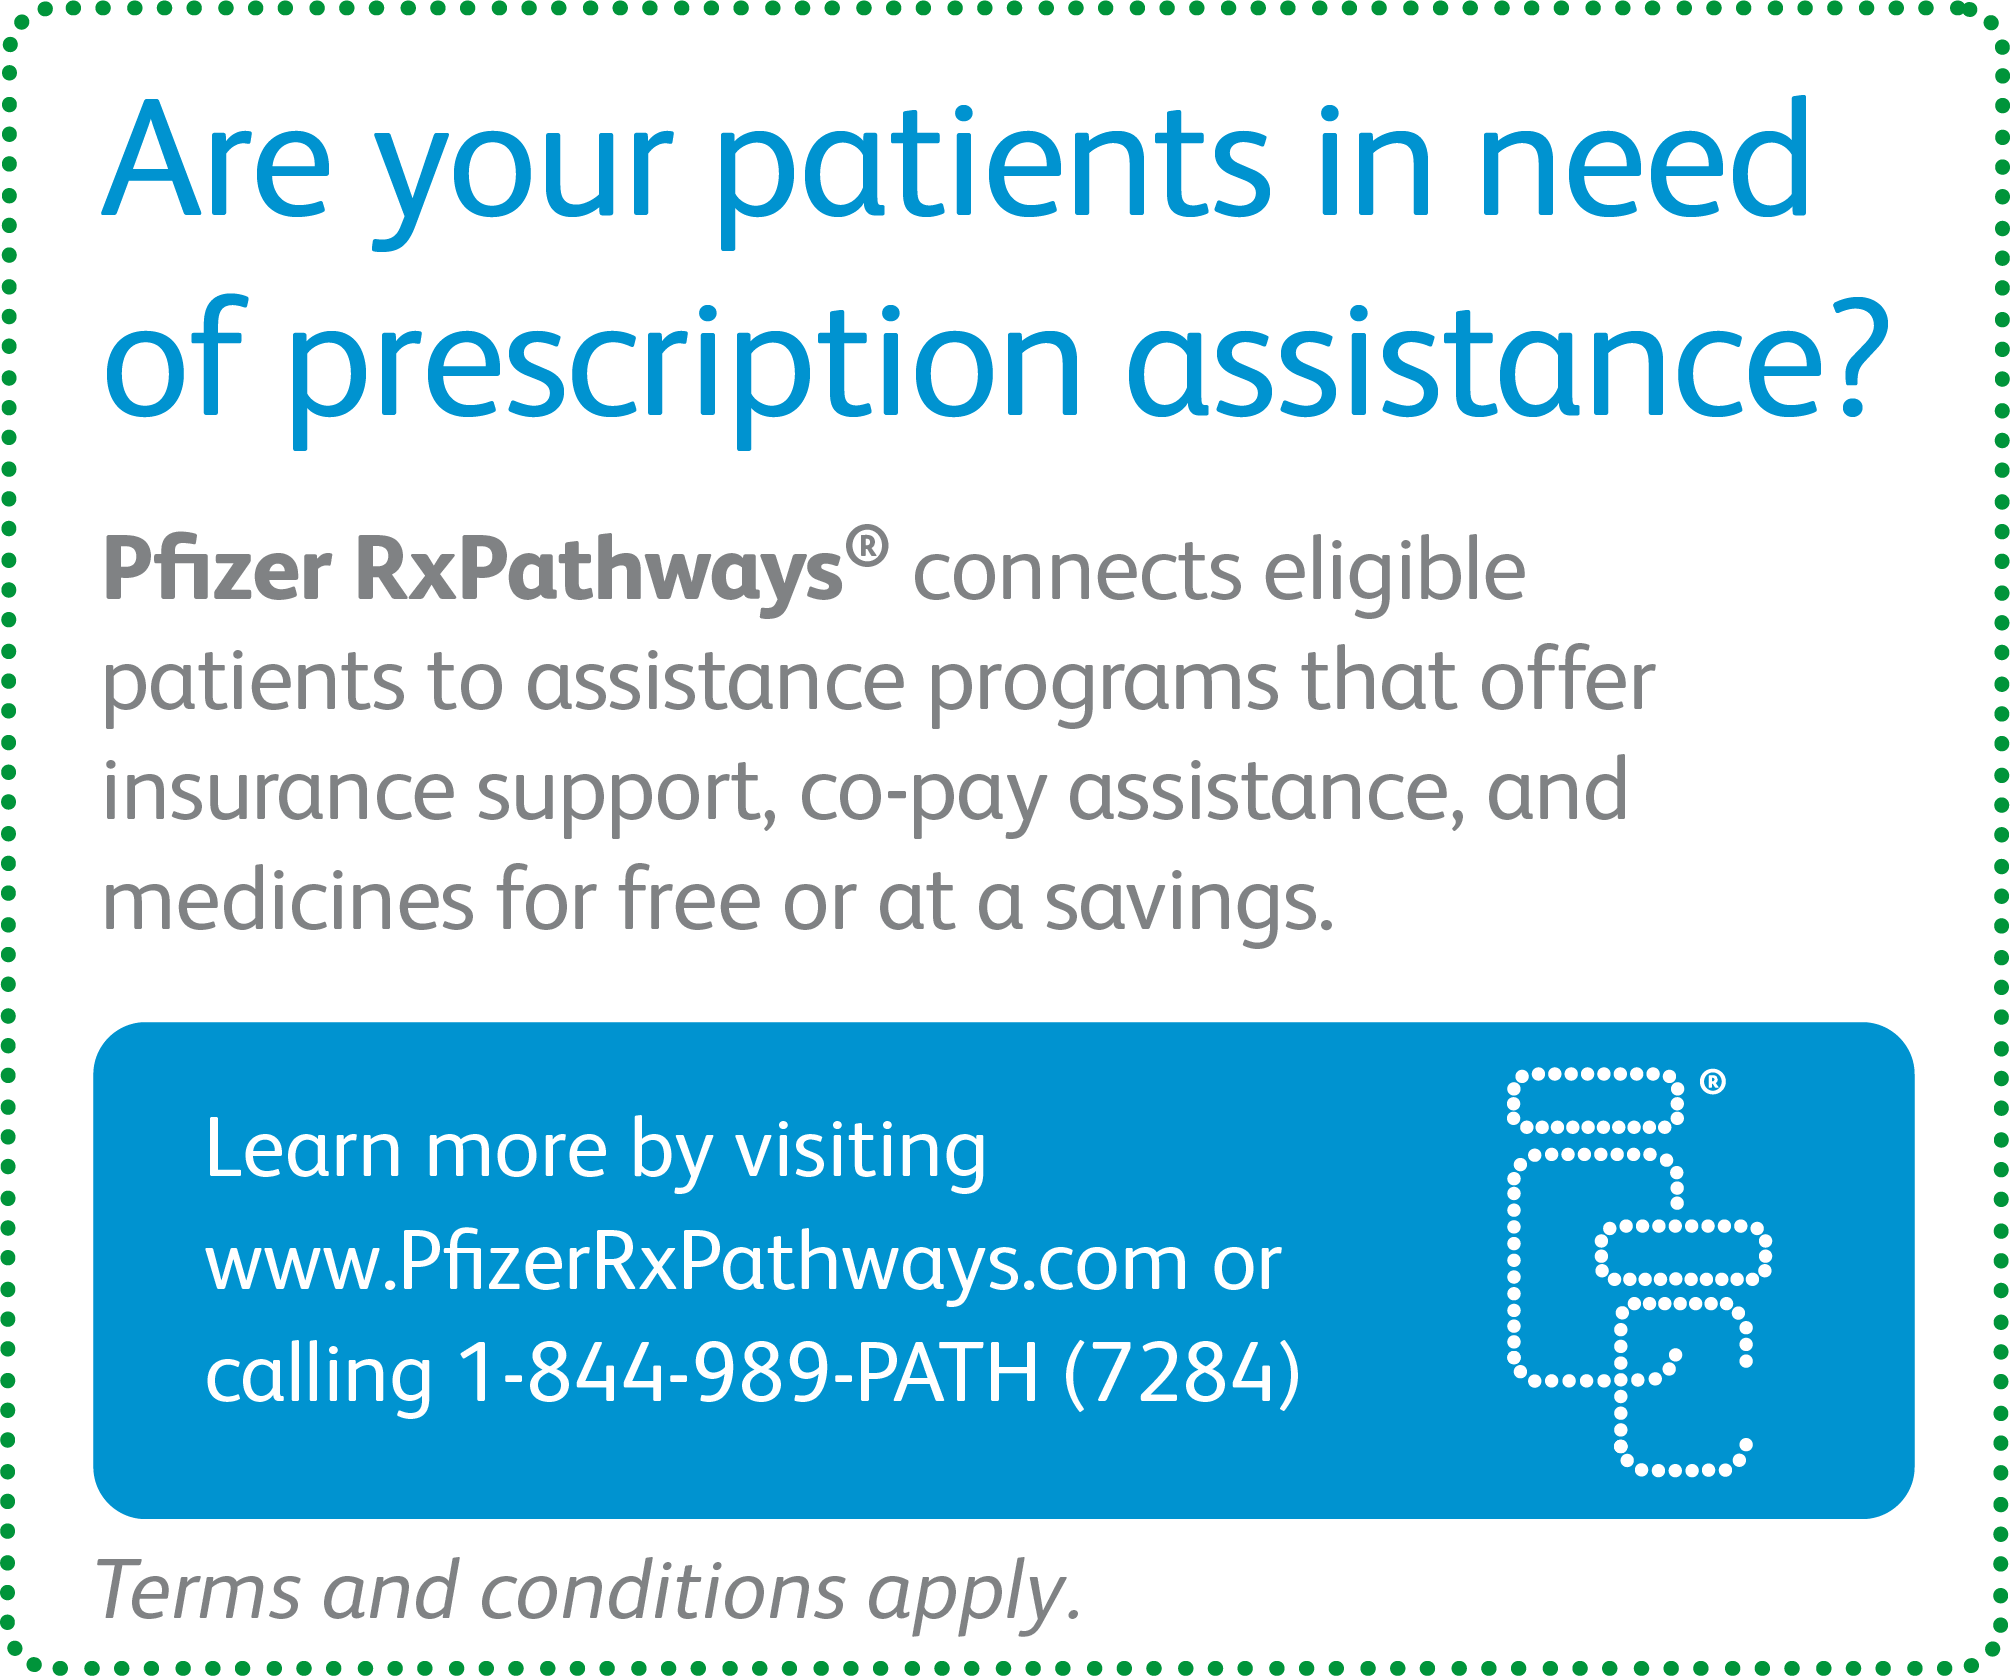 RxPathways.com